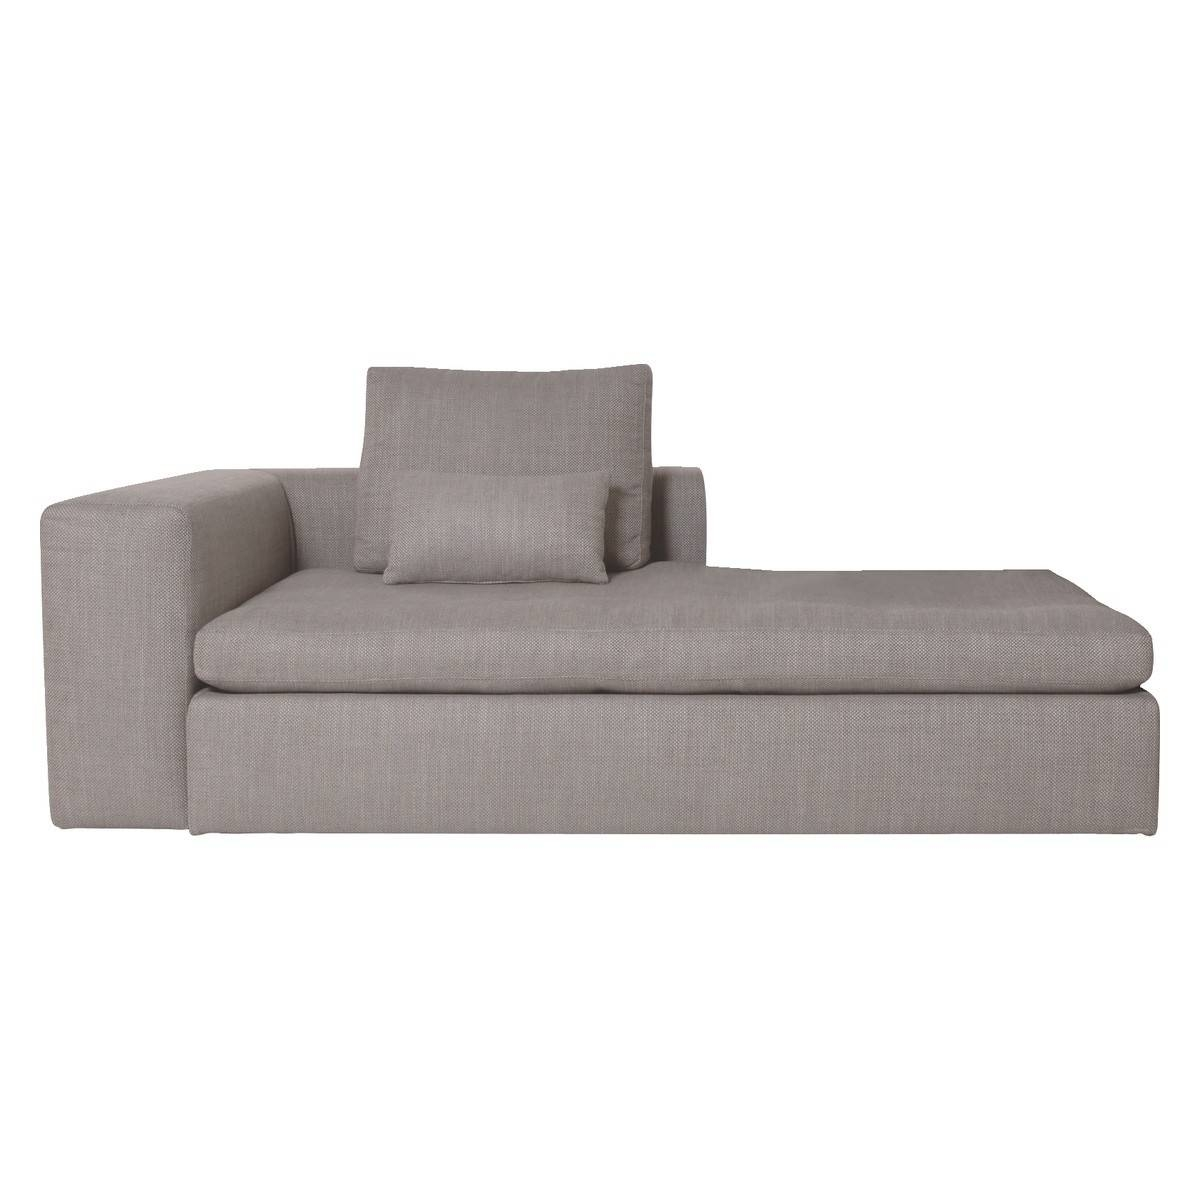 Sofa Bed With Chaise Longue Uk - Revistapacheco for Chaise Longue Sofa Beds (Image 13 of 15)